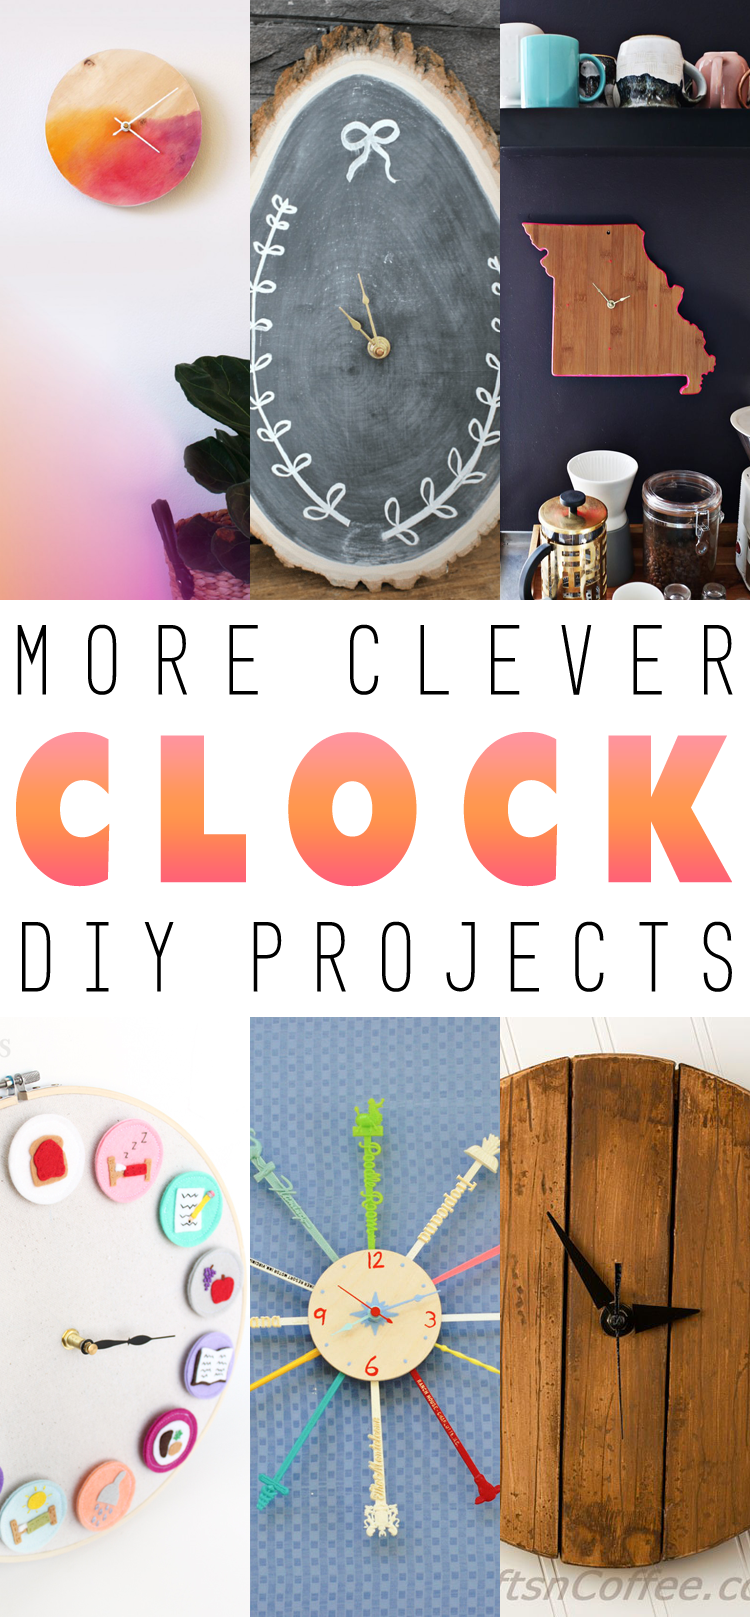 http://thecottagemarket.com/wp-content/uploads/2015/08/clock-TOWER-1.png